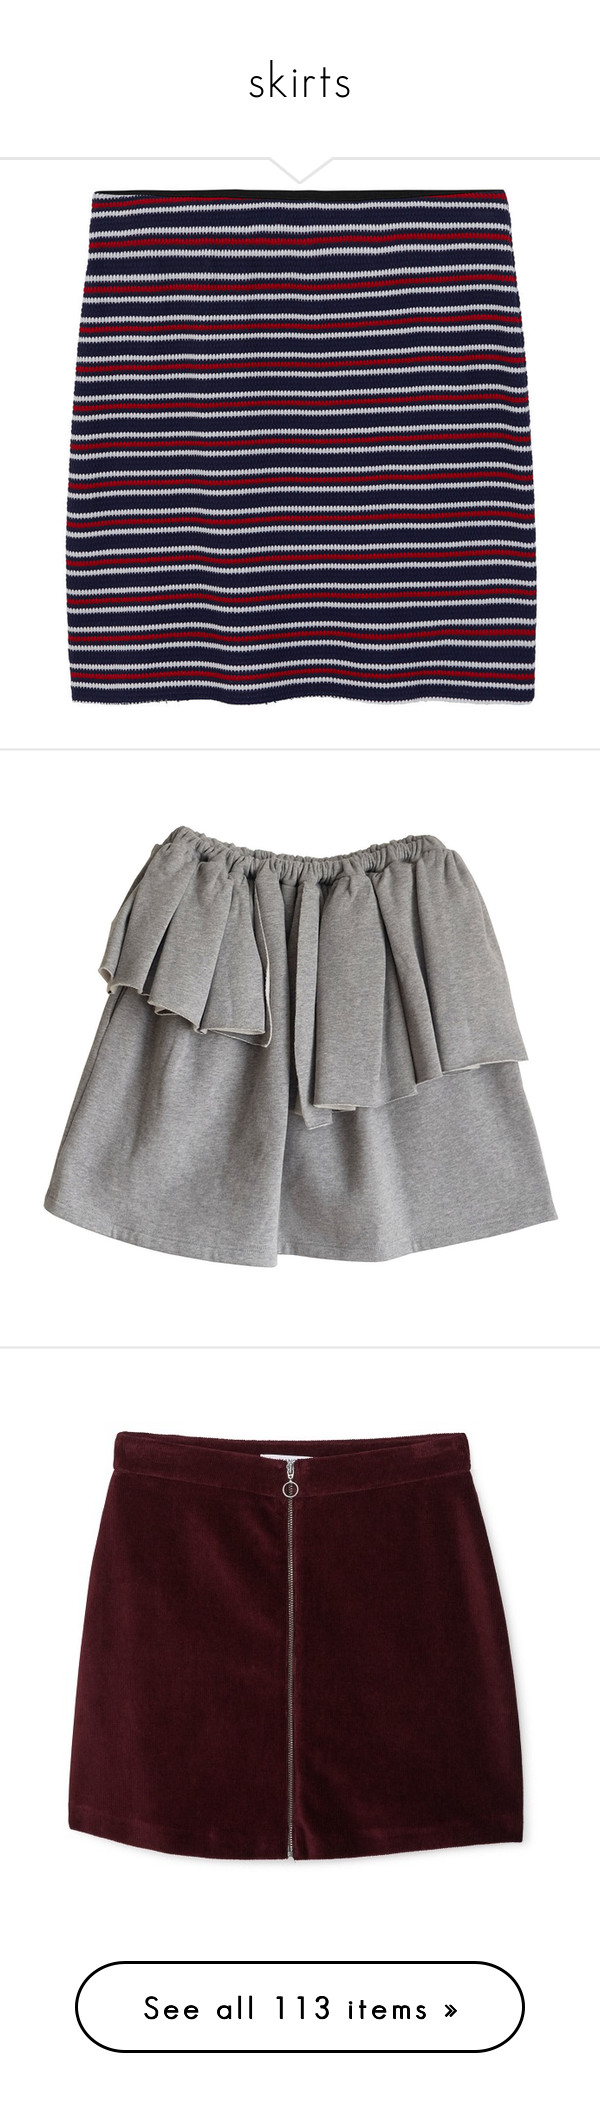 """""""skirts"""" by hedleyfaberdrive101 on Polyvore featuring skirts, cotton elastic waist skirts, blue cotton skirt, striped skirt, cotton knee length skirt, mango skirt, mini skirts, short frilly skirt, mini skirt and elastic waist skirt"""